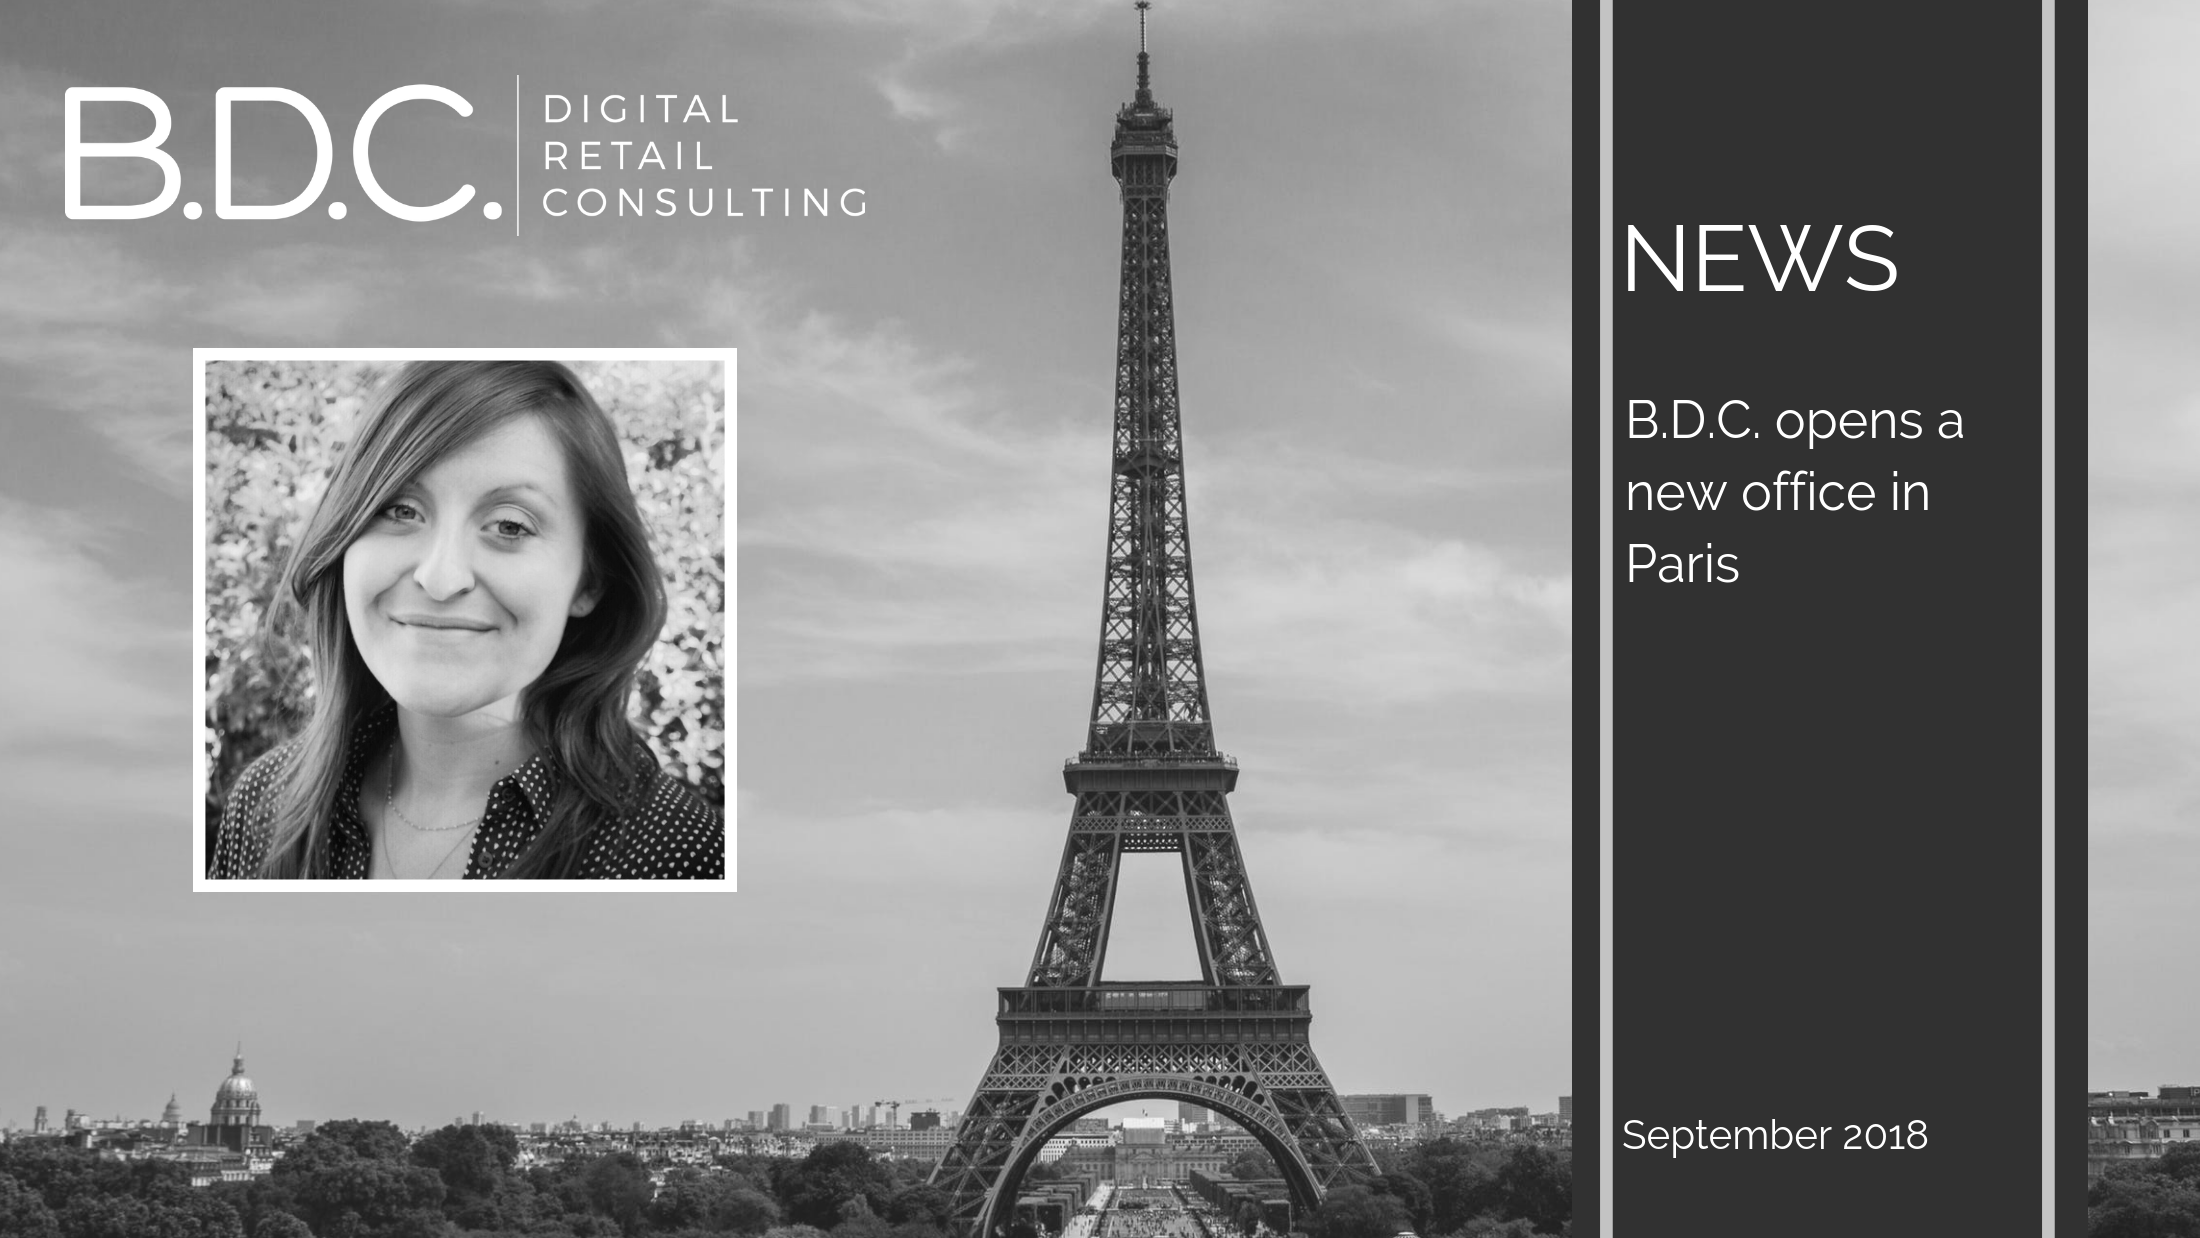 bdc digital retail consulting lille nyc paris